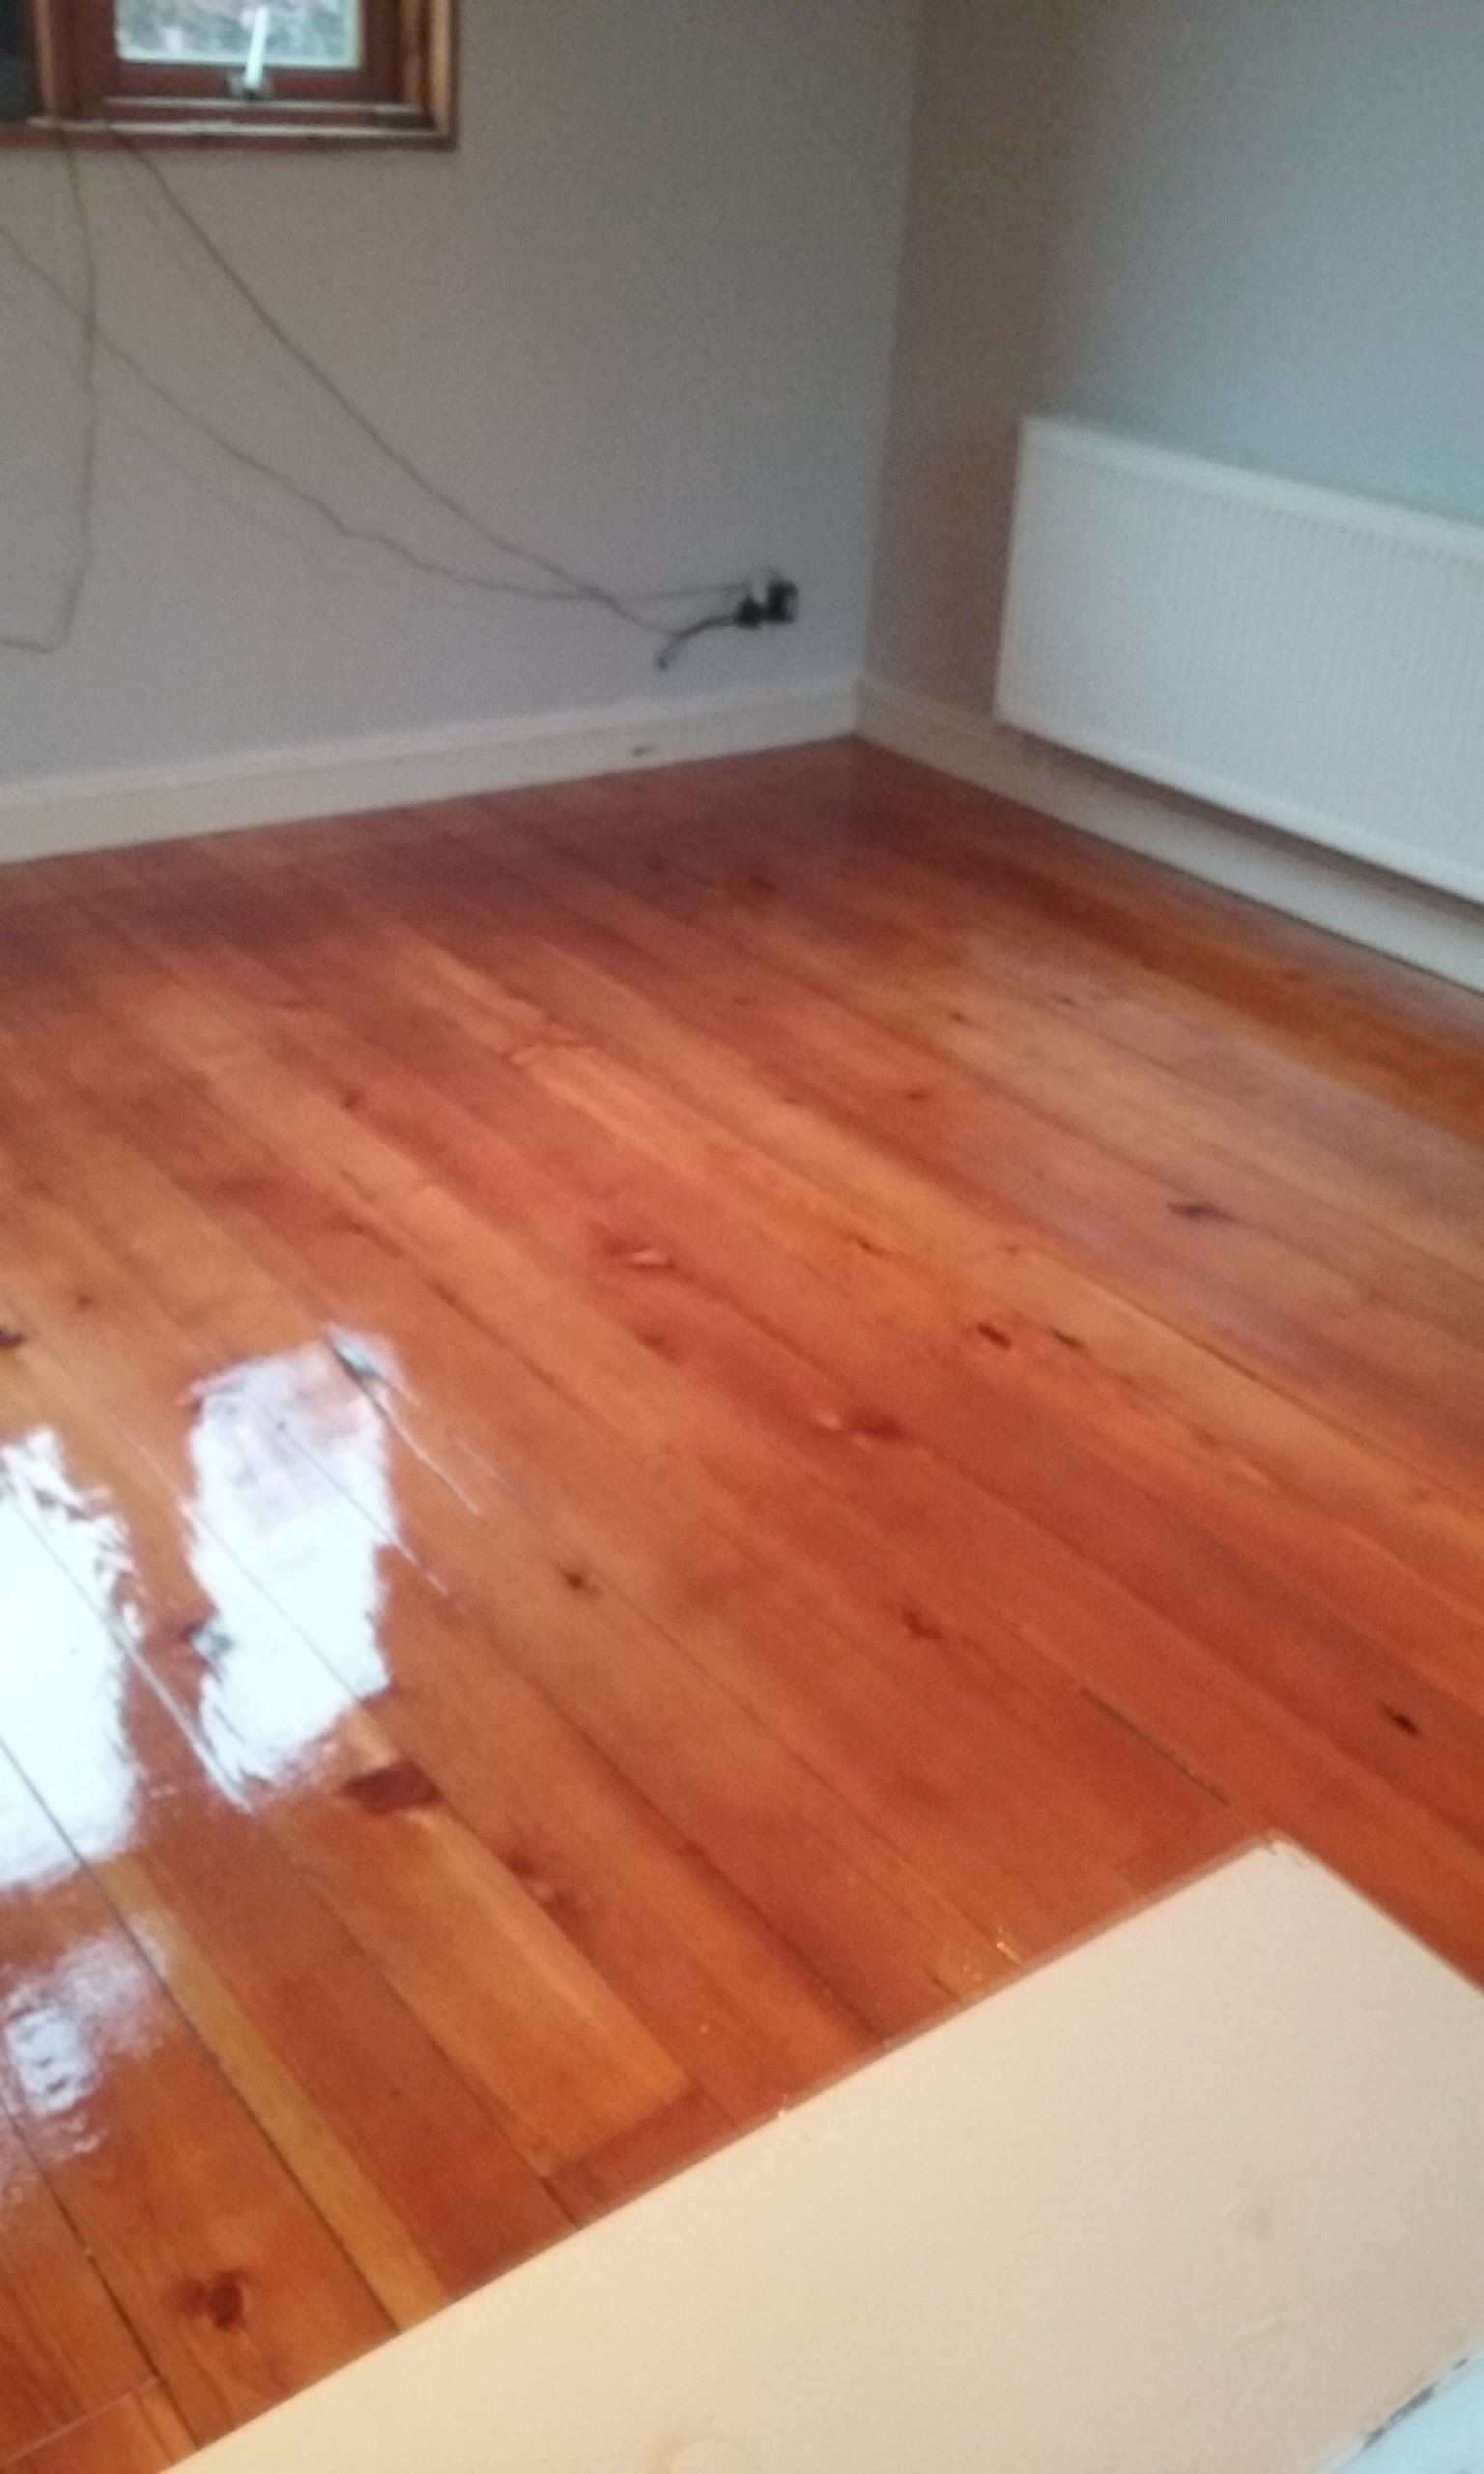 200 year old pitch pine sanded and varnish with just clear satin finish, beautiful colour